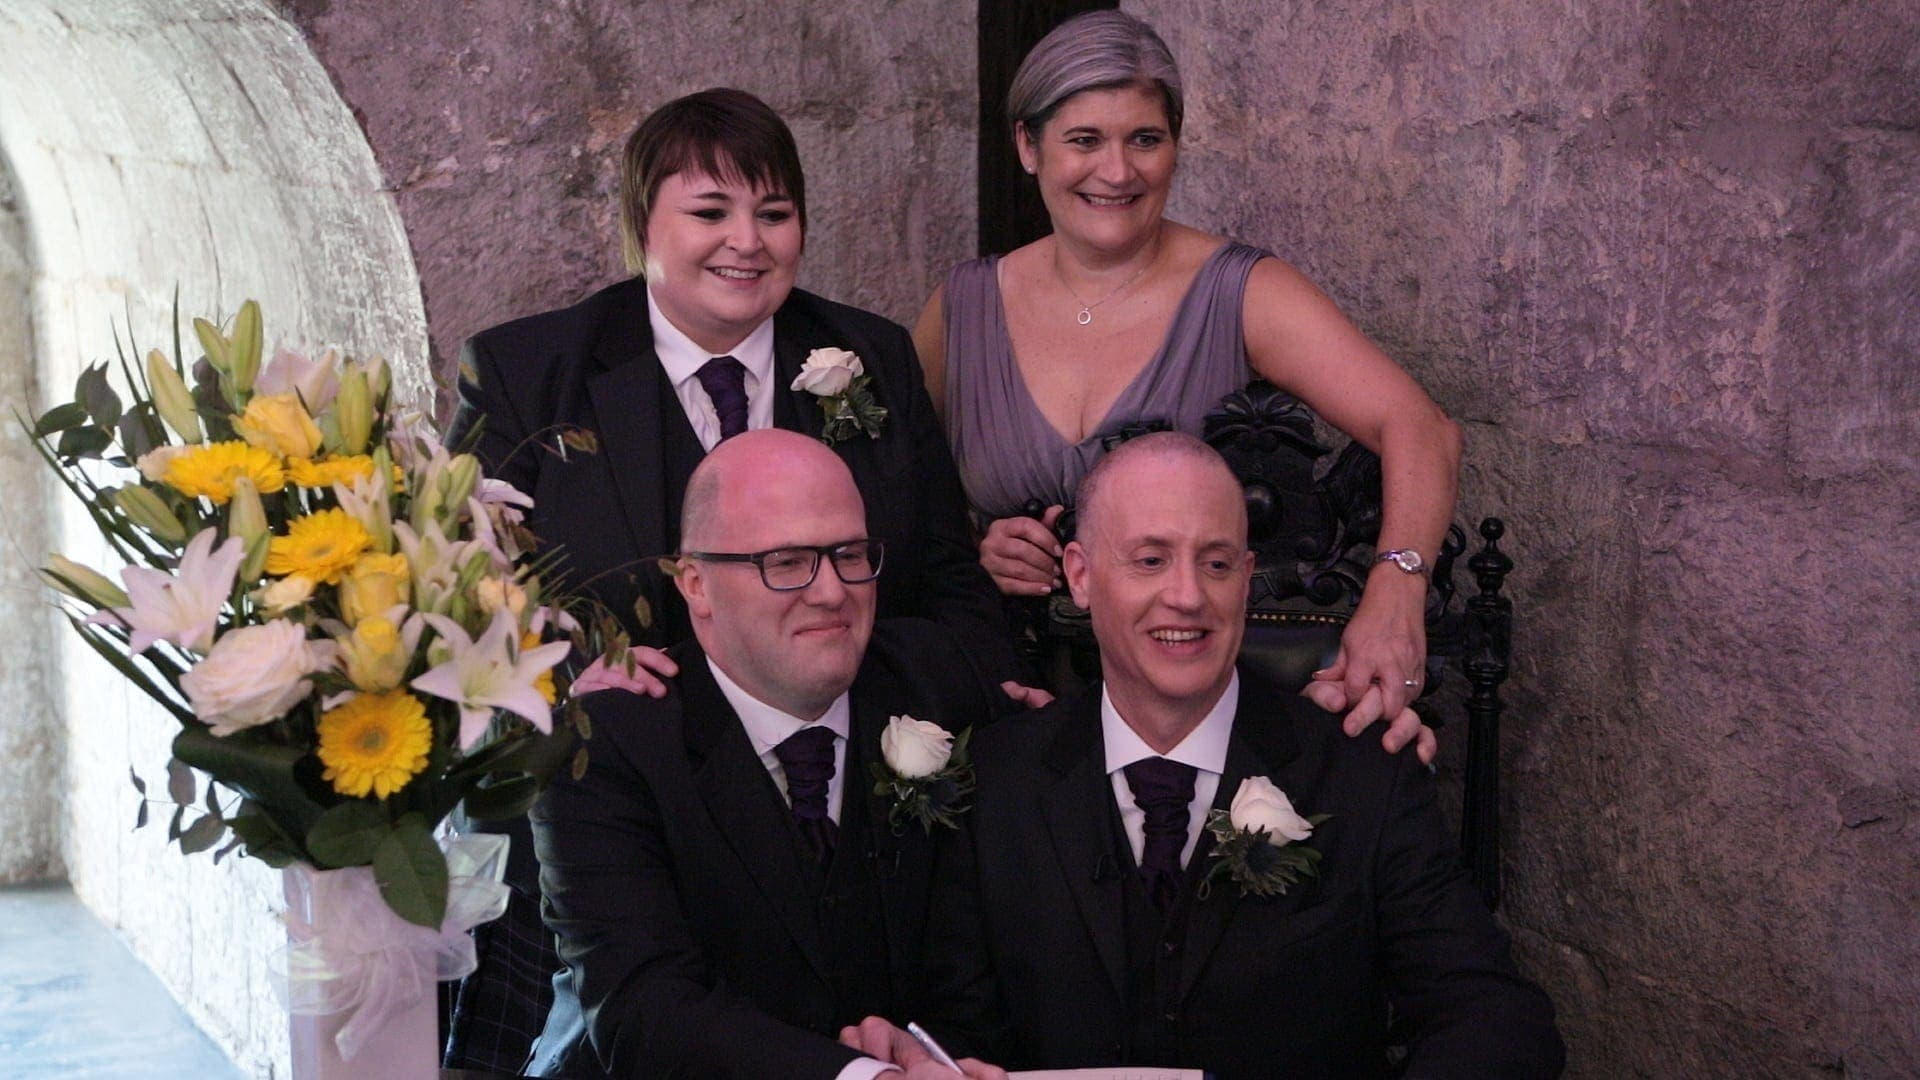 Borthwick Castle Wedding Videographer - Newly-weds and witnesses signing the marriage schedule